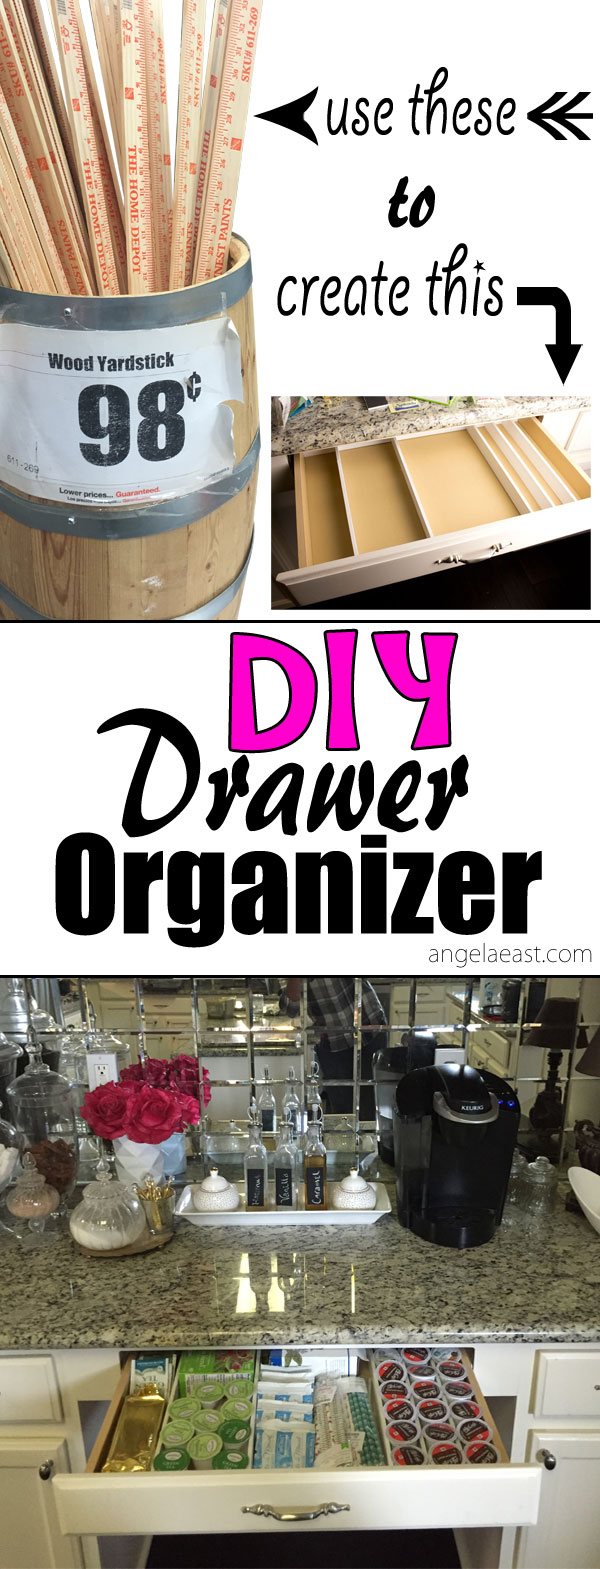 DIY How to create drawer separator with yard sticks on angelaeast.com | homeddecor | coffee bar | coffee station